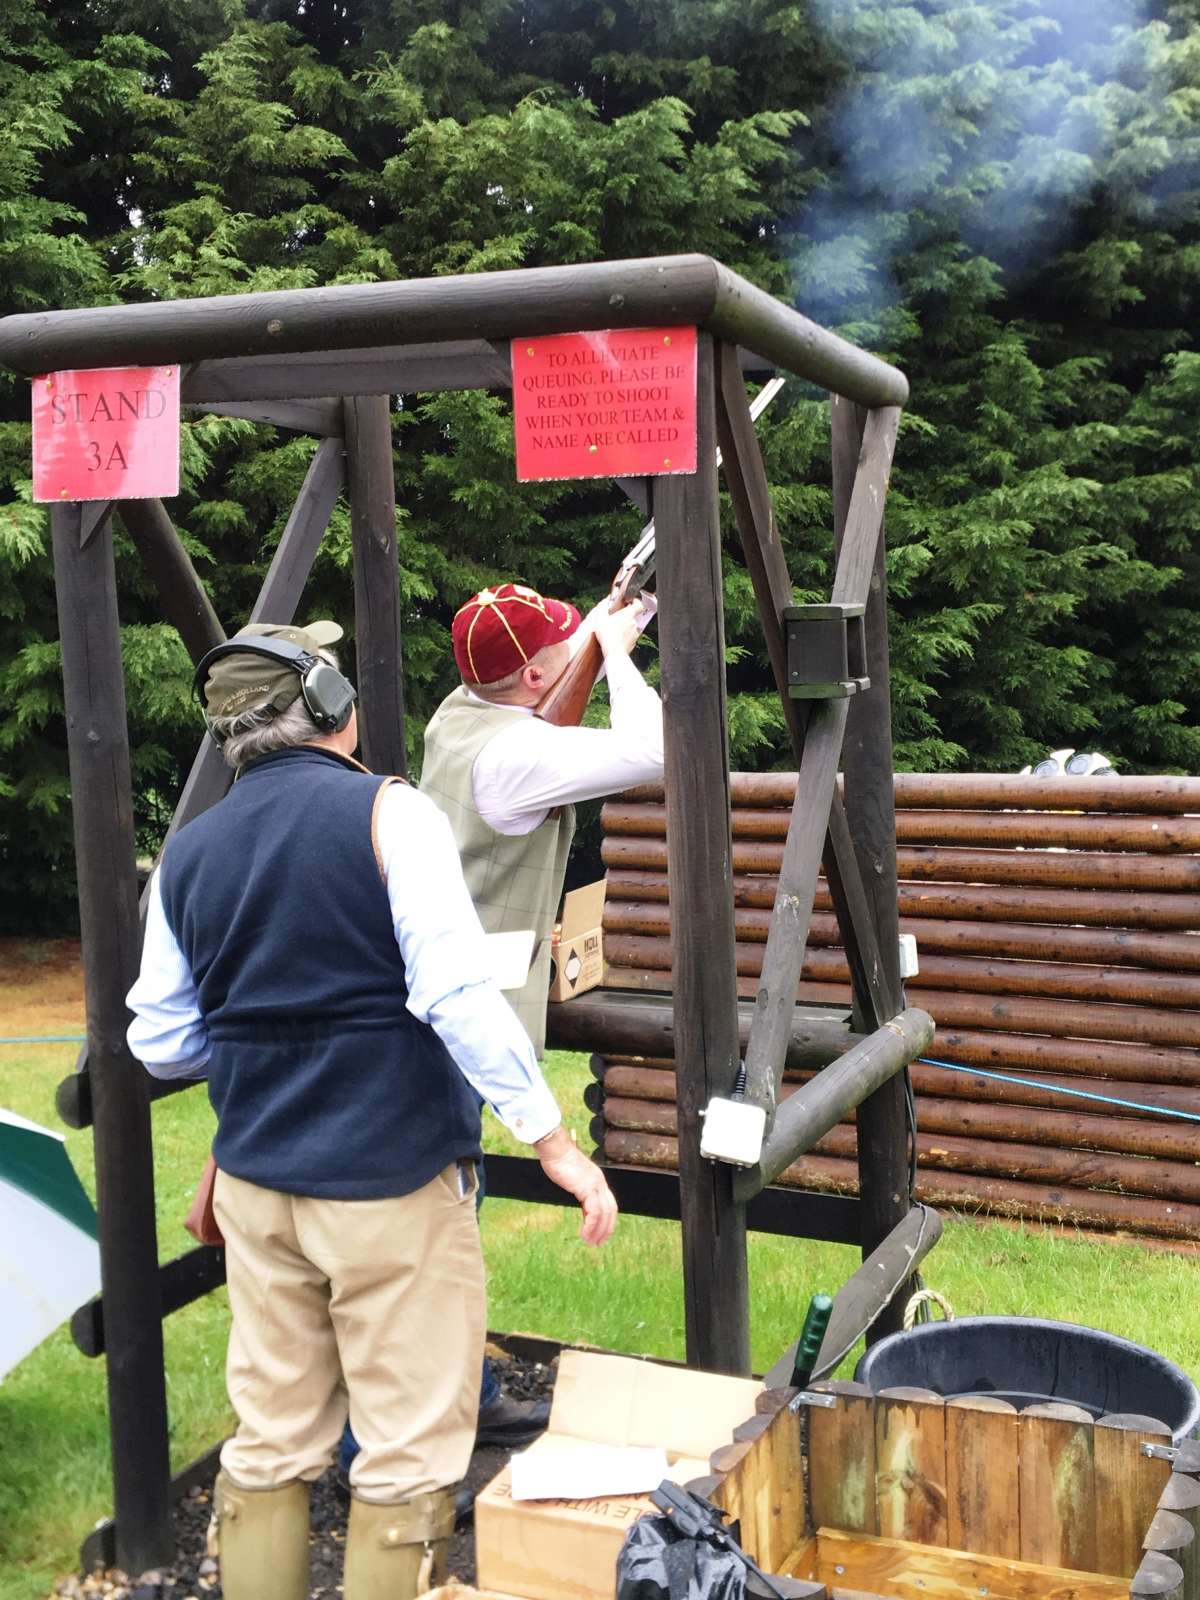 Inter-Livery clay pigeon shoot, Holland & Holland, Ruislip